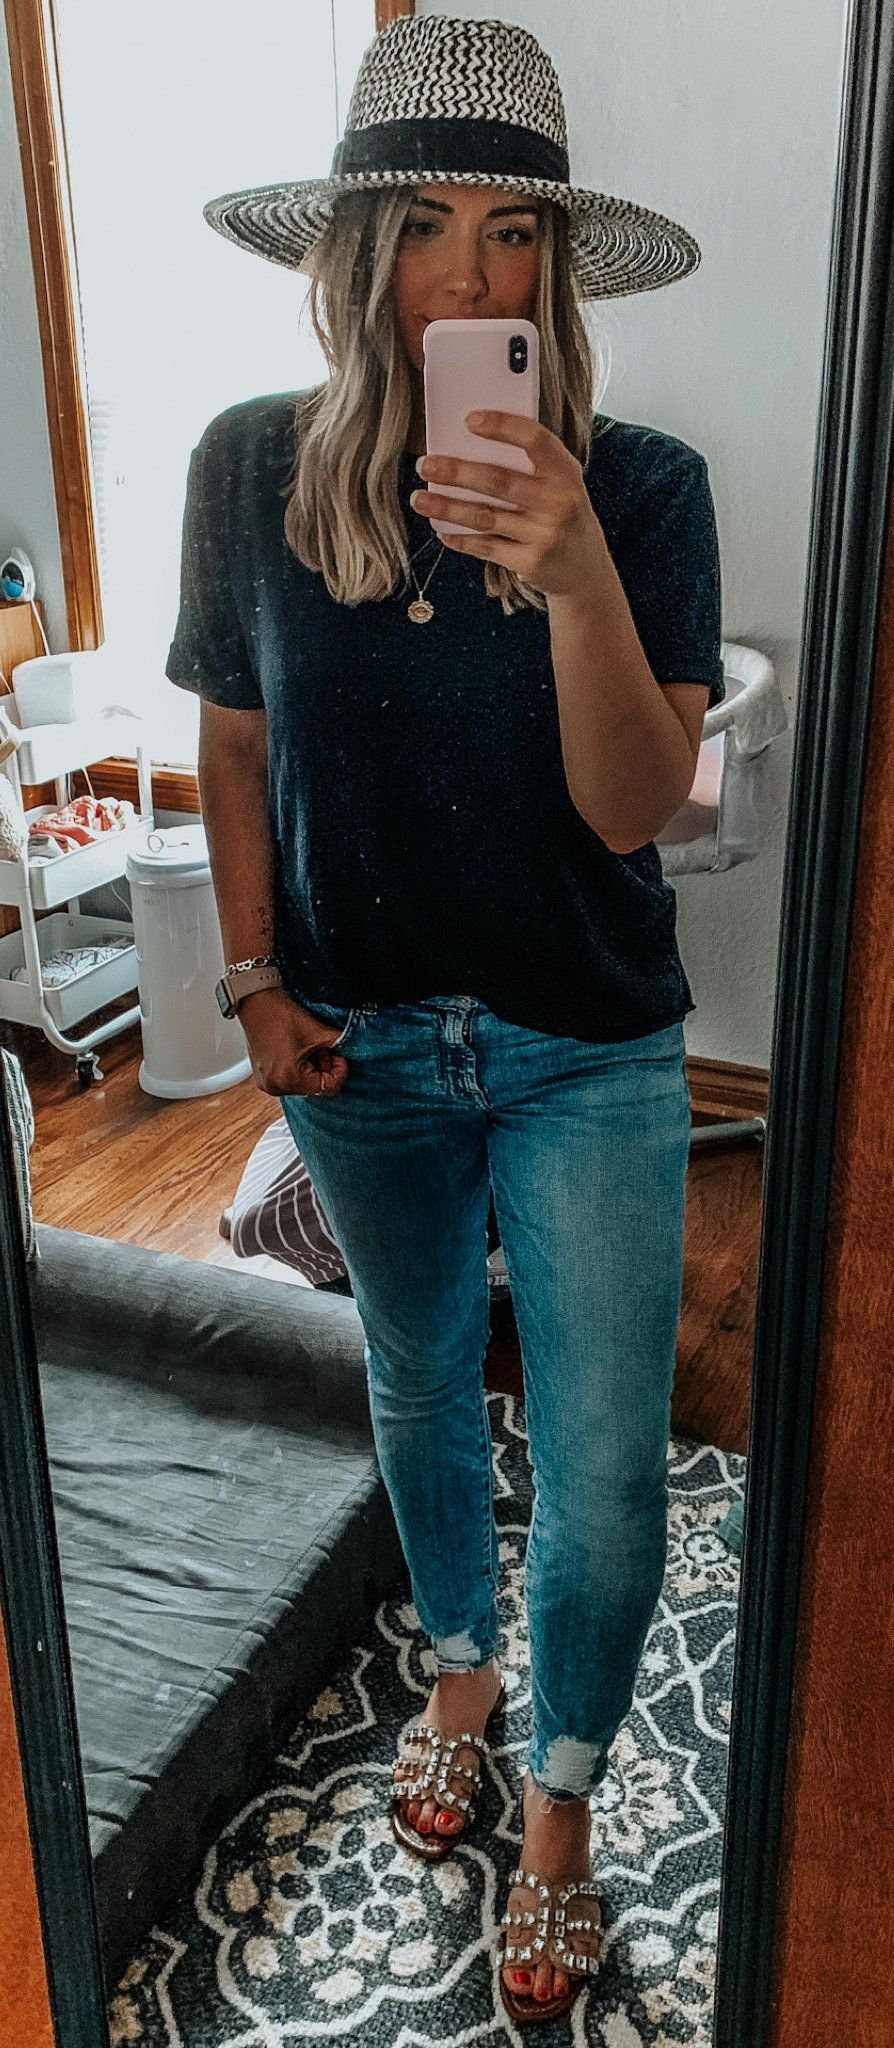 fedora hat and blue cuff jeans. #summer #outfits